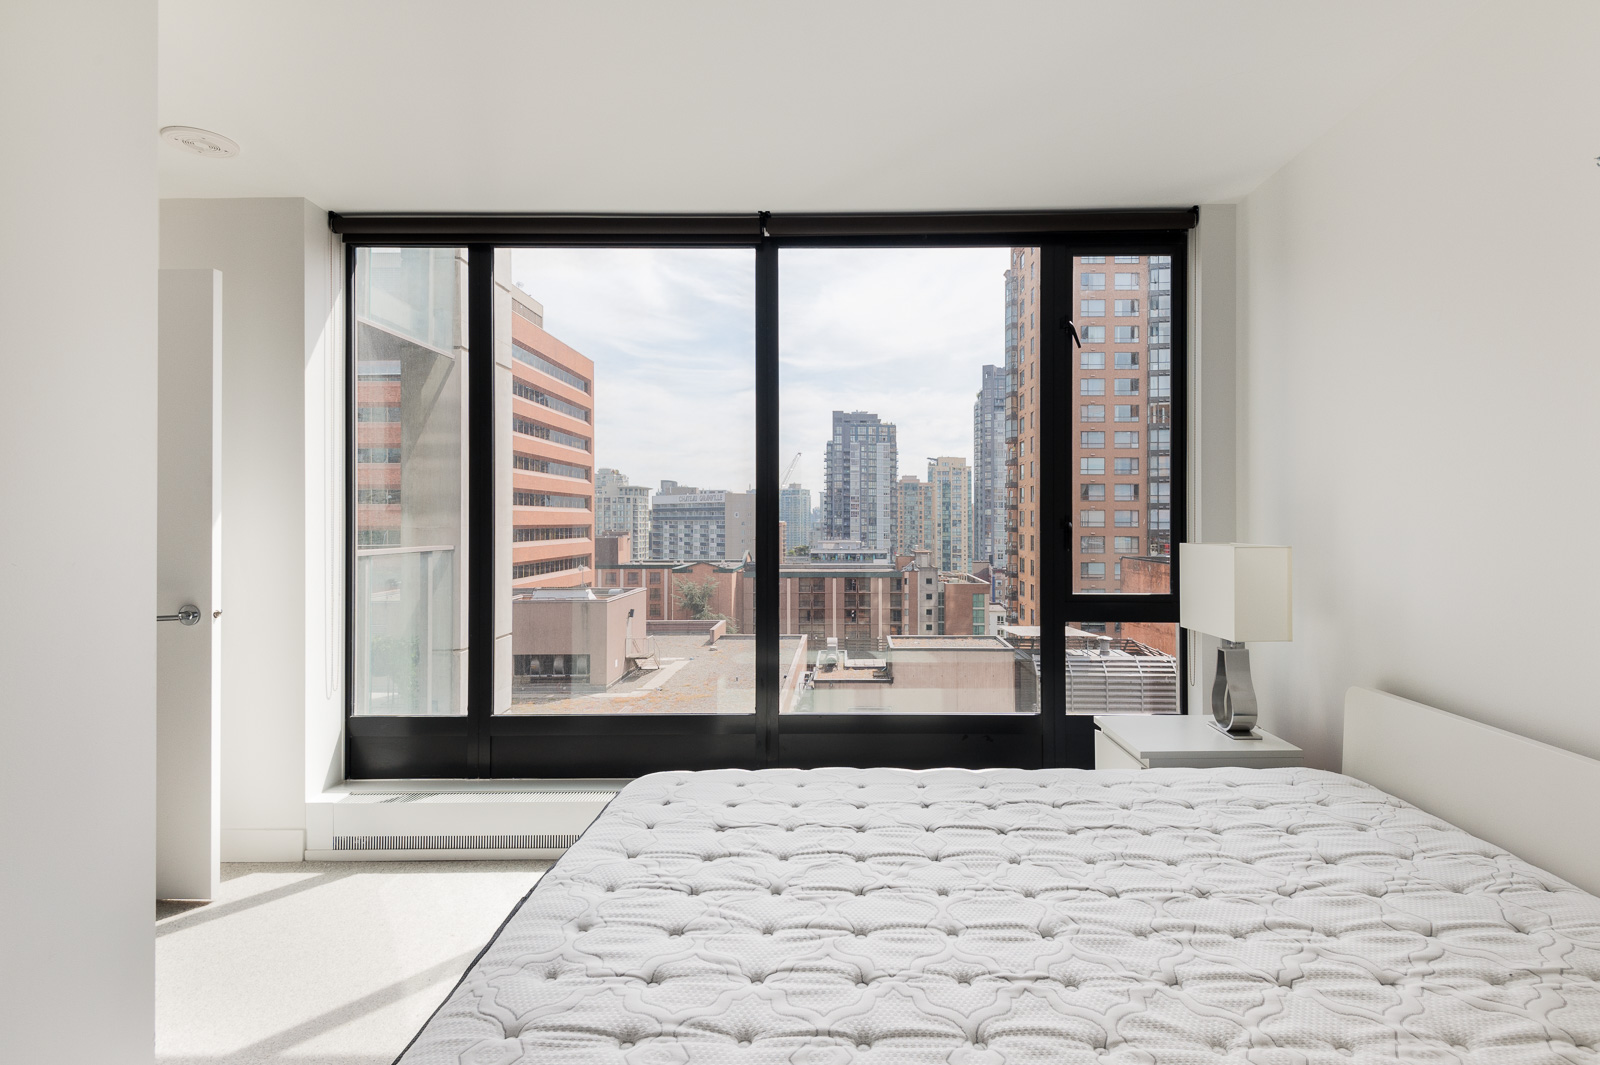 Bedroom in luxury rental with floor-to-ceiling windows offering view of Vancouver.